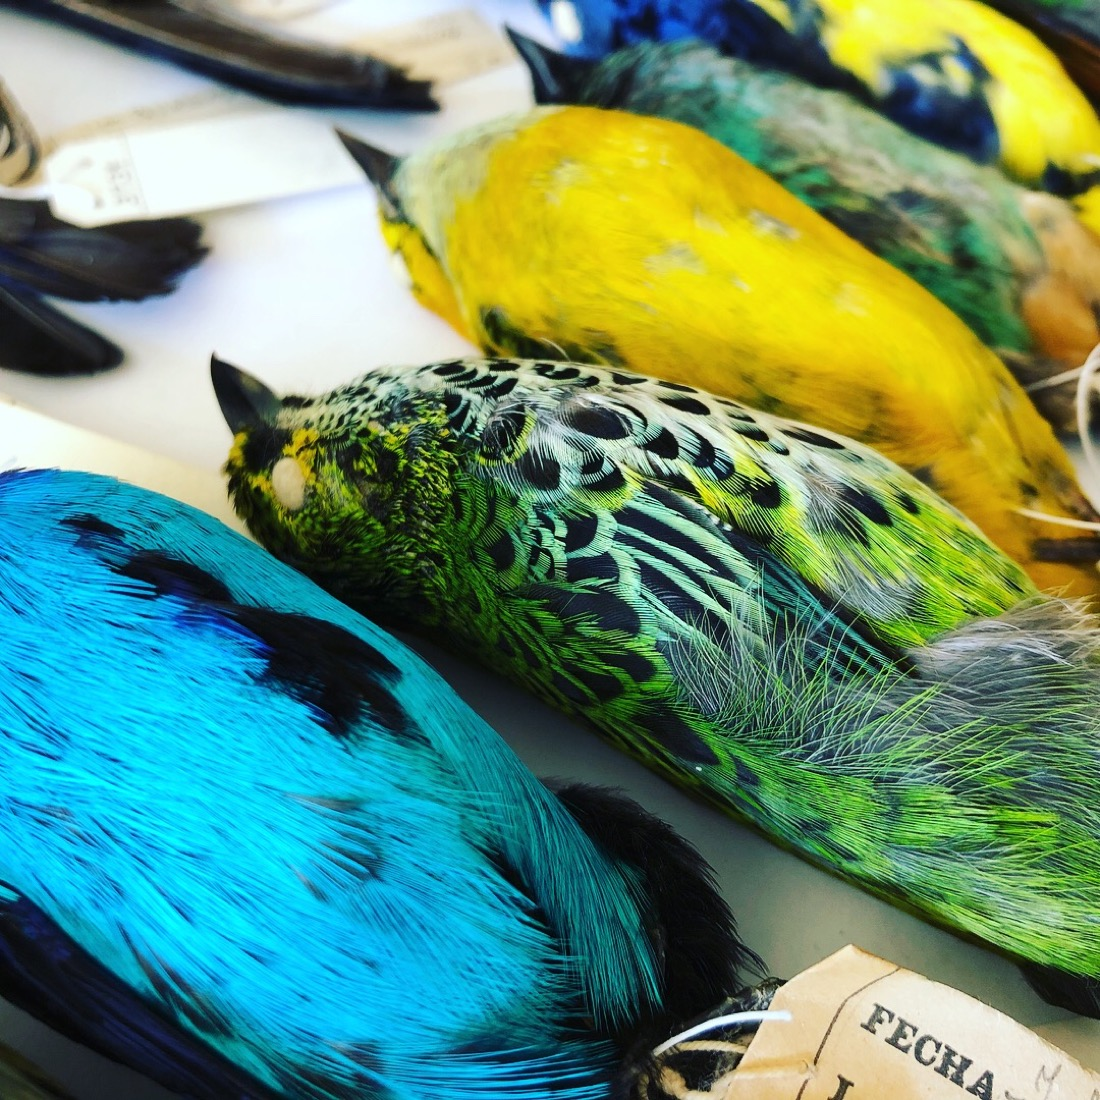 neon blue, green, and yellow bird specimens lying next to each other on a table